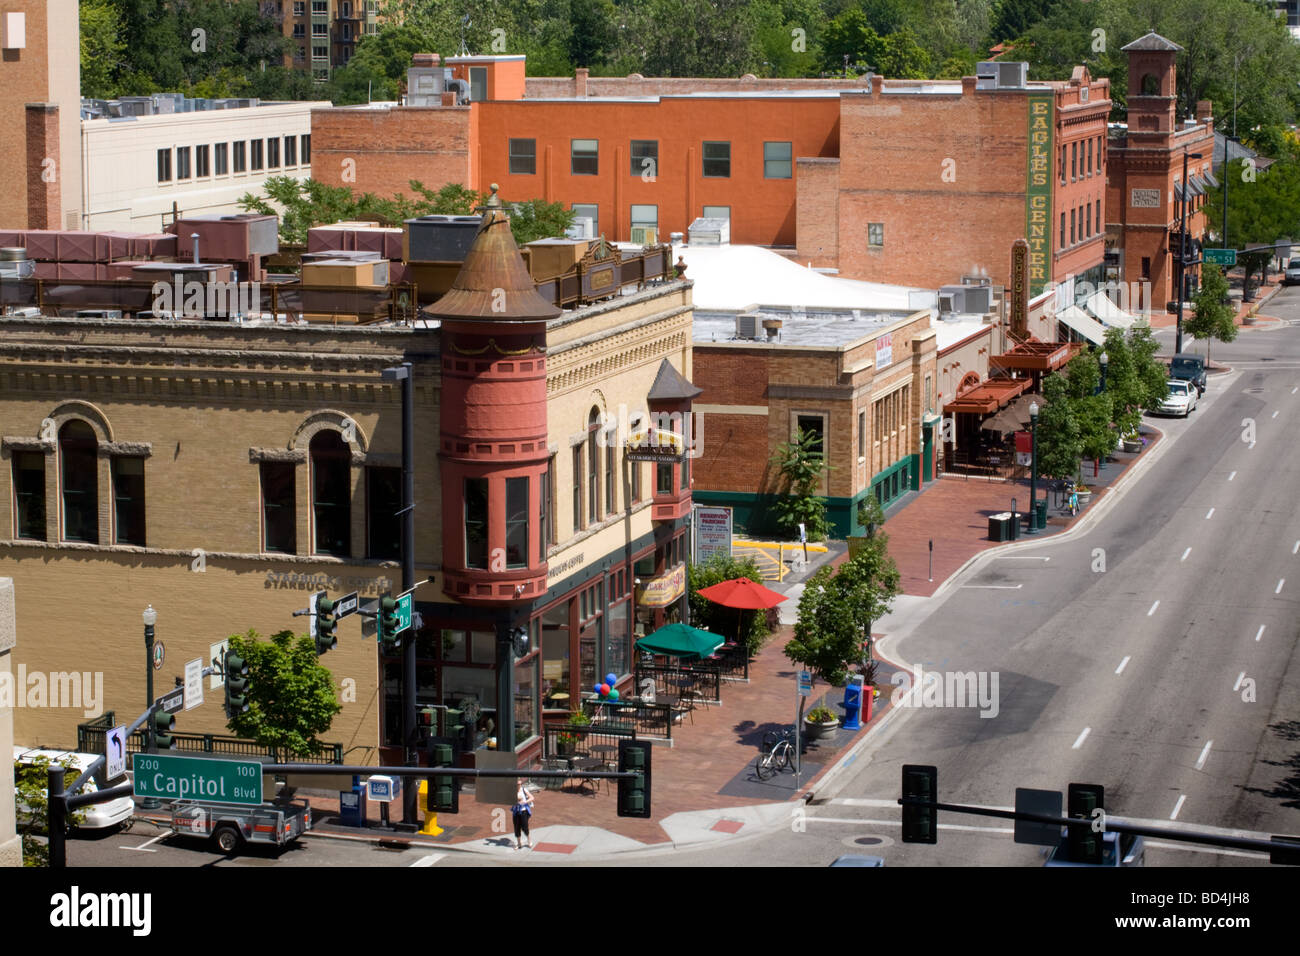 Business district downtown Boise Idaho - Stock Image